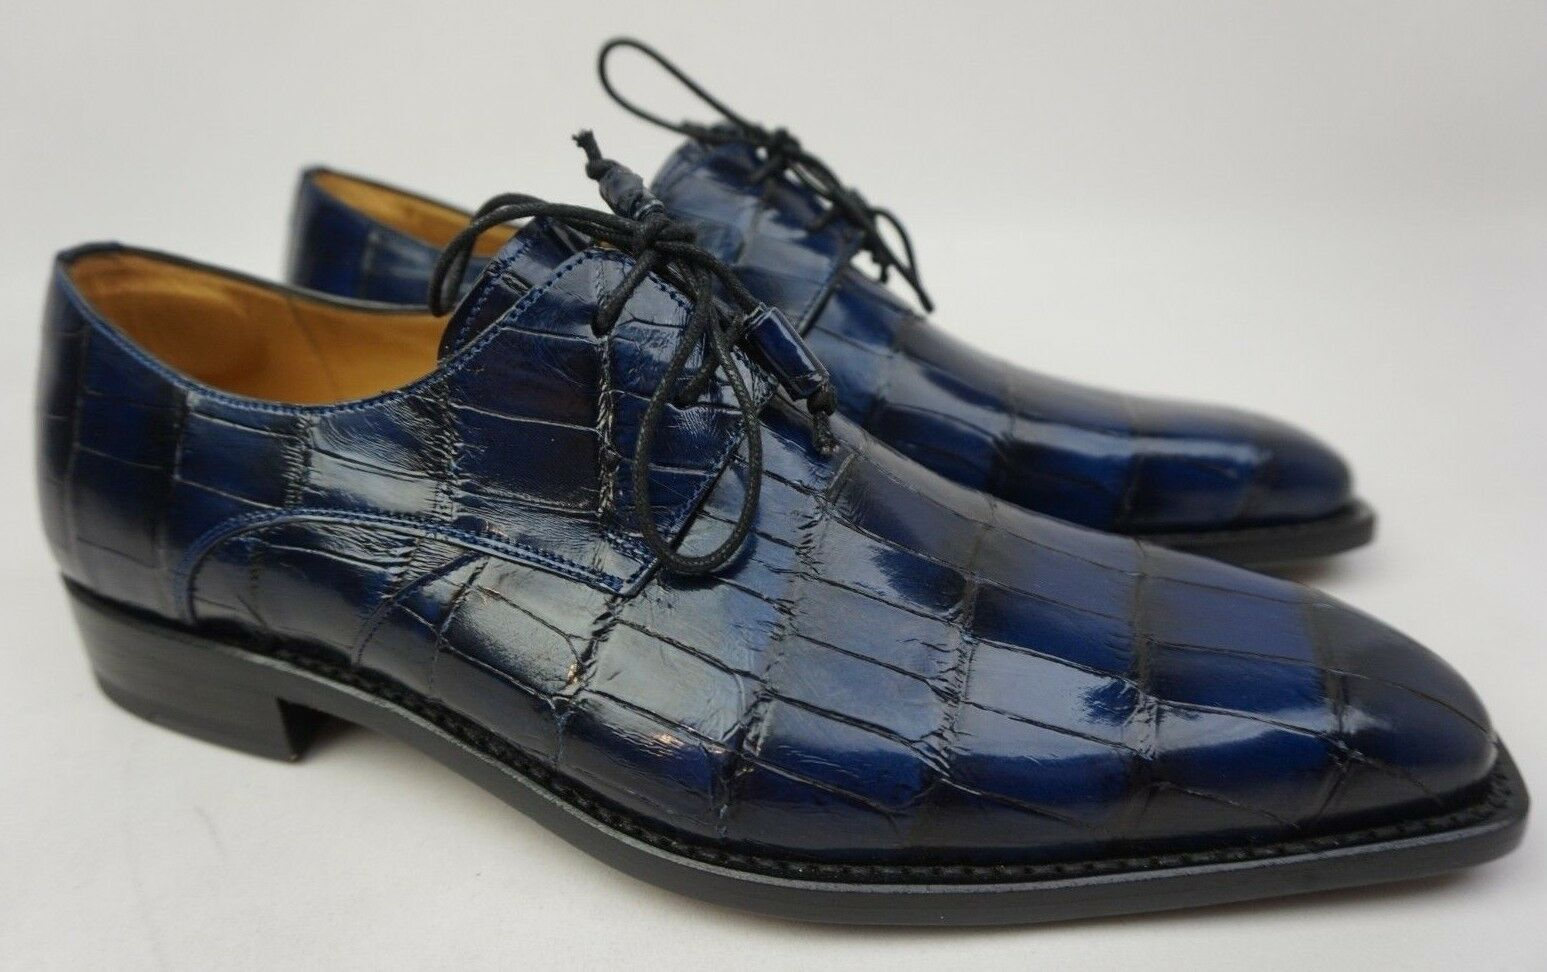 Mezlan Grillo Derby Oxford Genuine Alligator bluee Men's shoes Size 9 M NEW